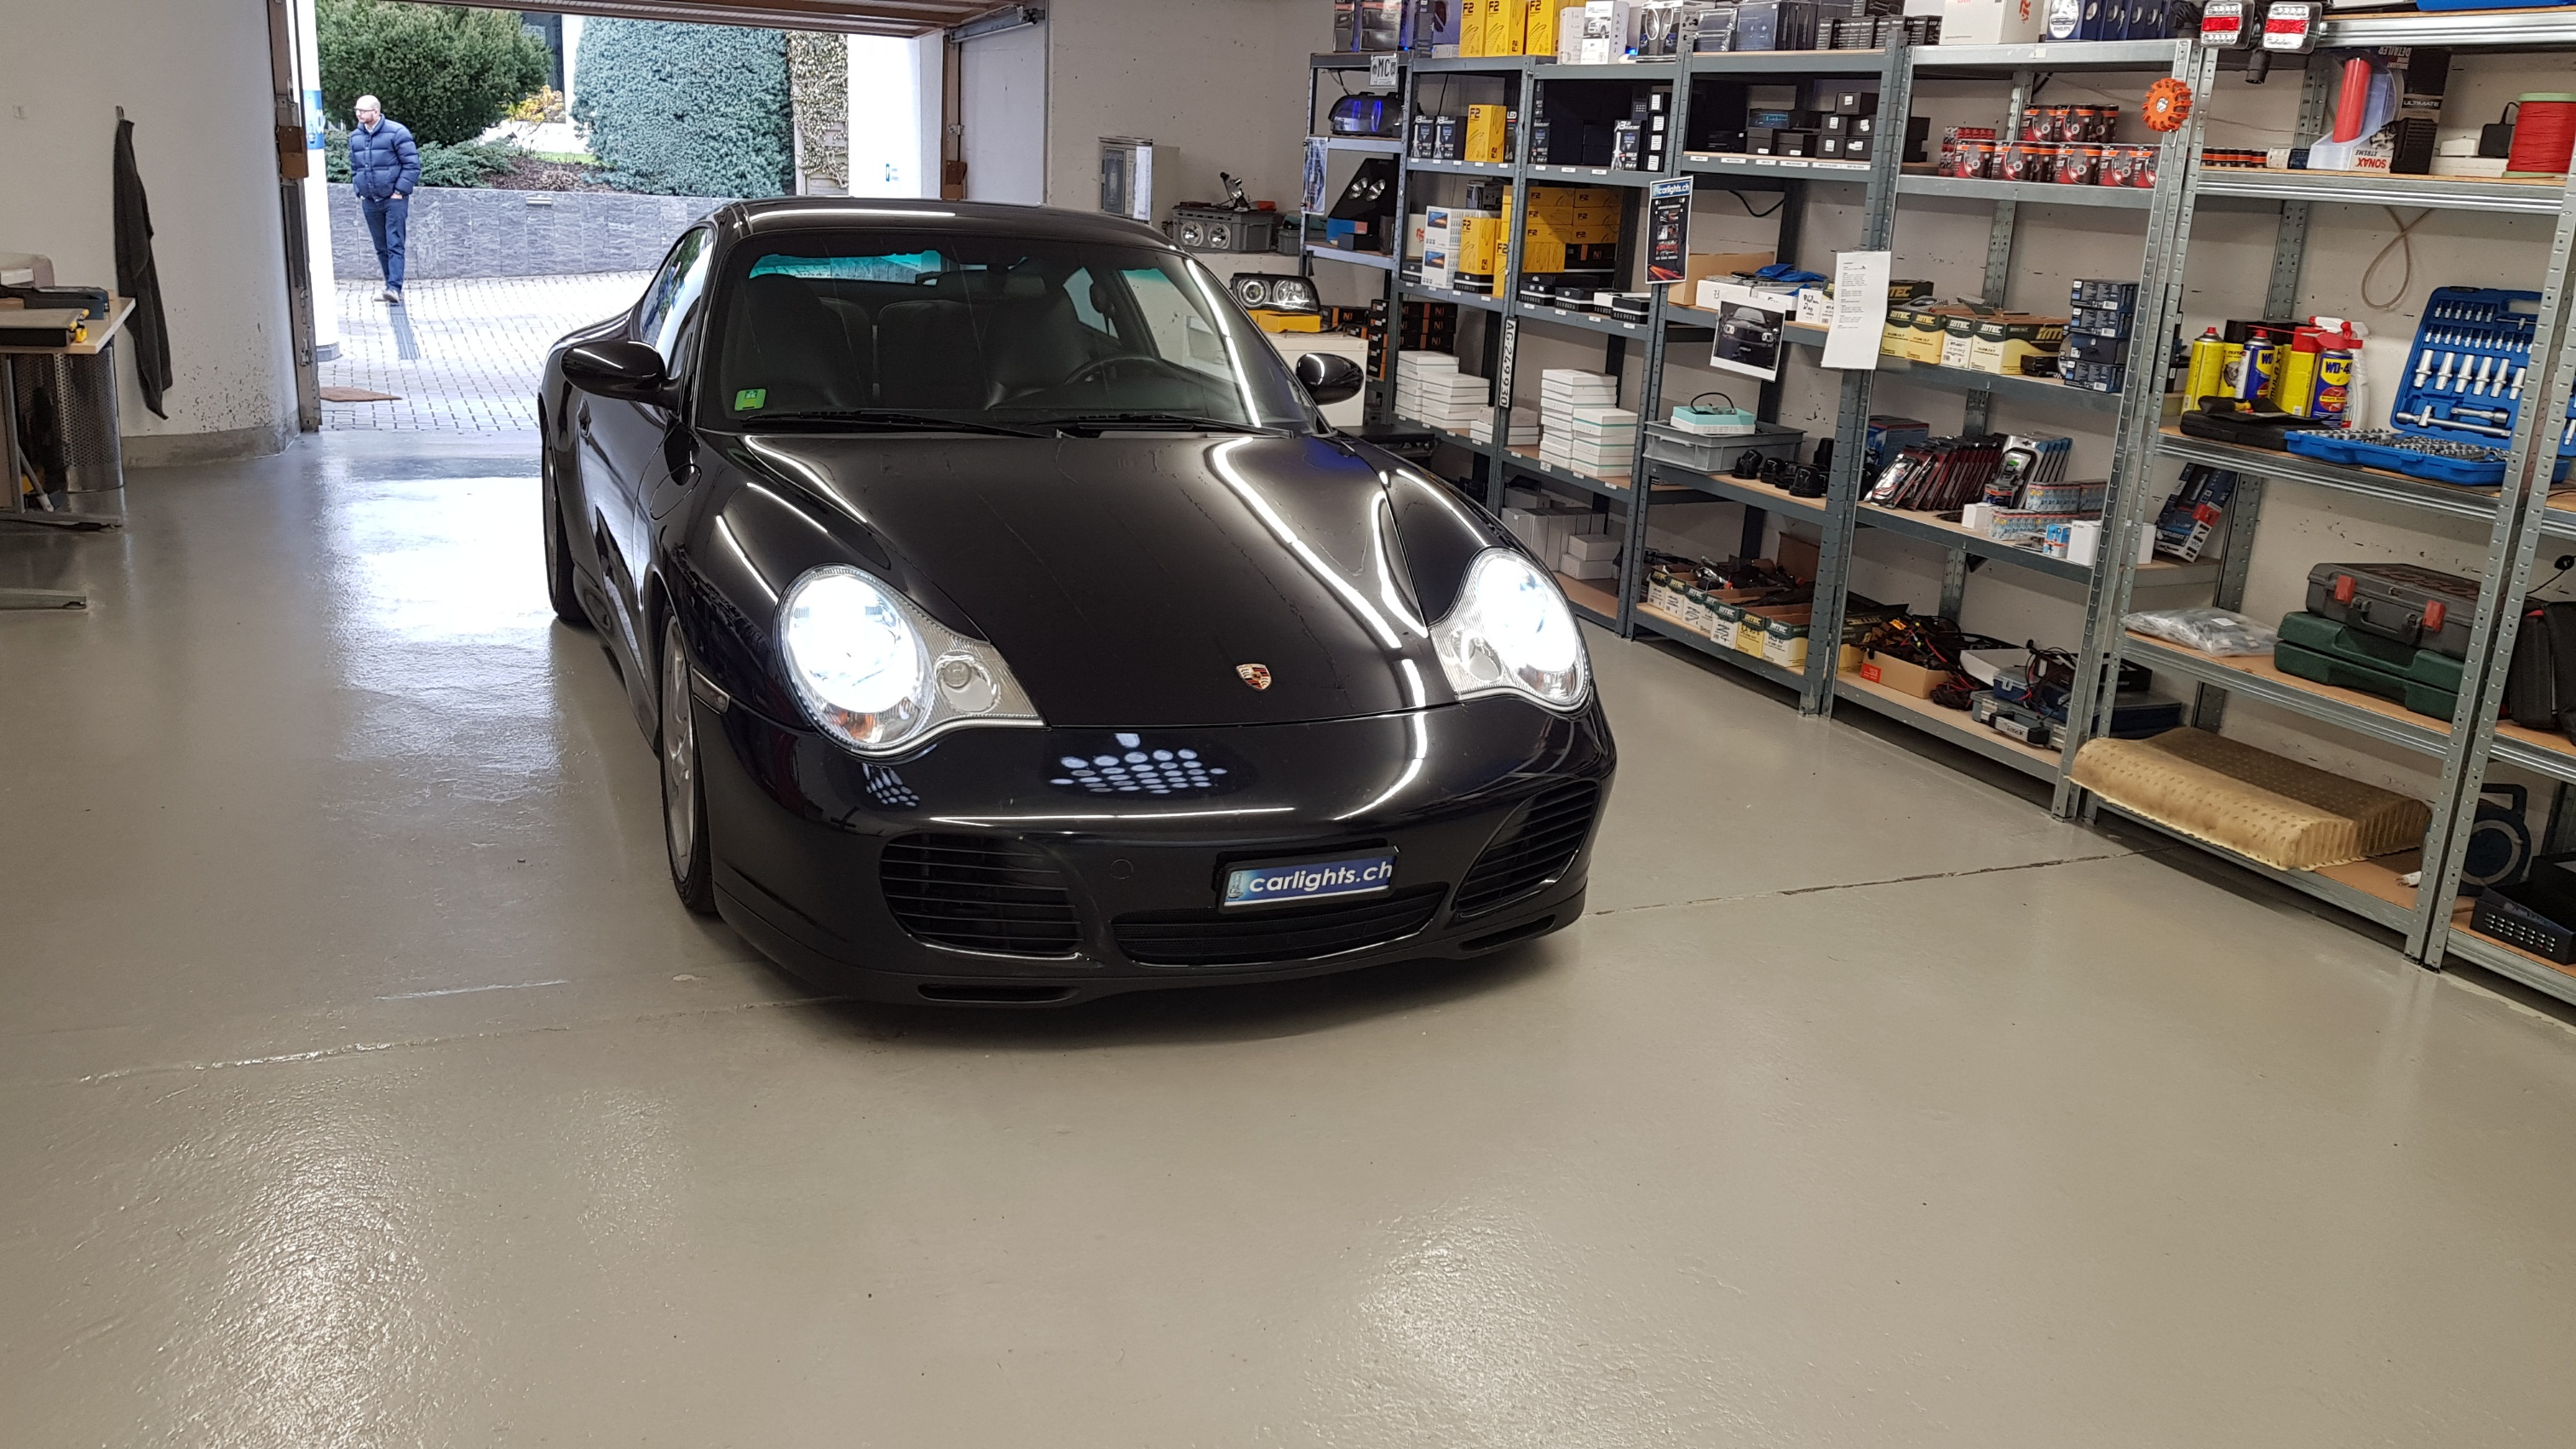 PORSCHE  911 CARRERA 4S LED Umbau abblendlicht ED H7 Philips X-Treme Ultinon 200% mehr Licht Standlicht LED Swiss Made